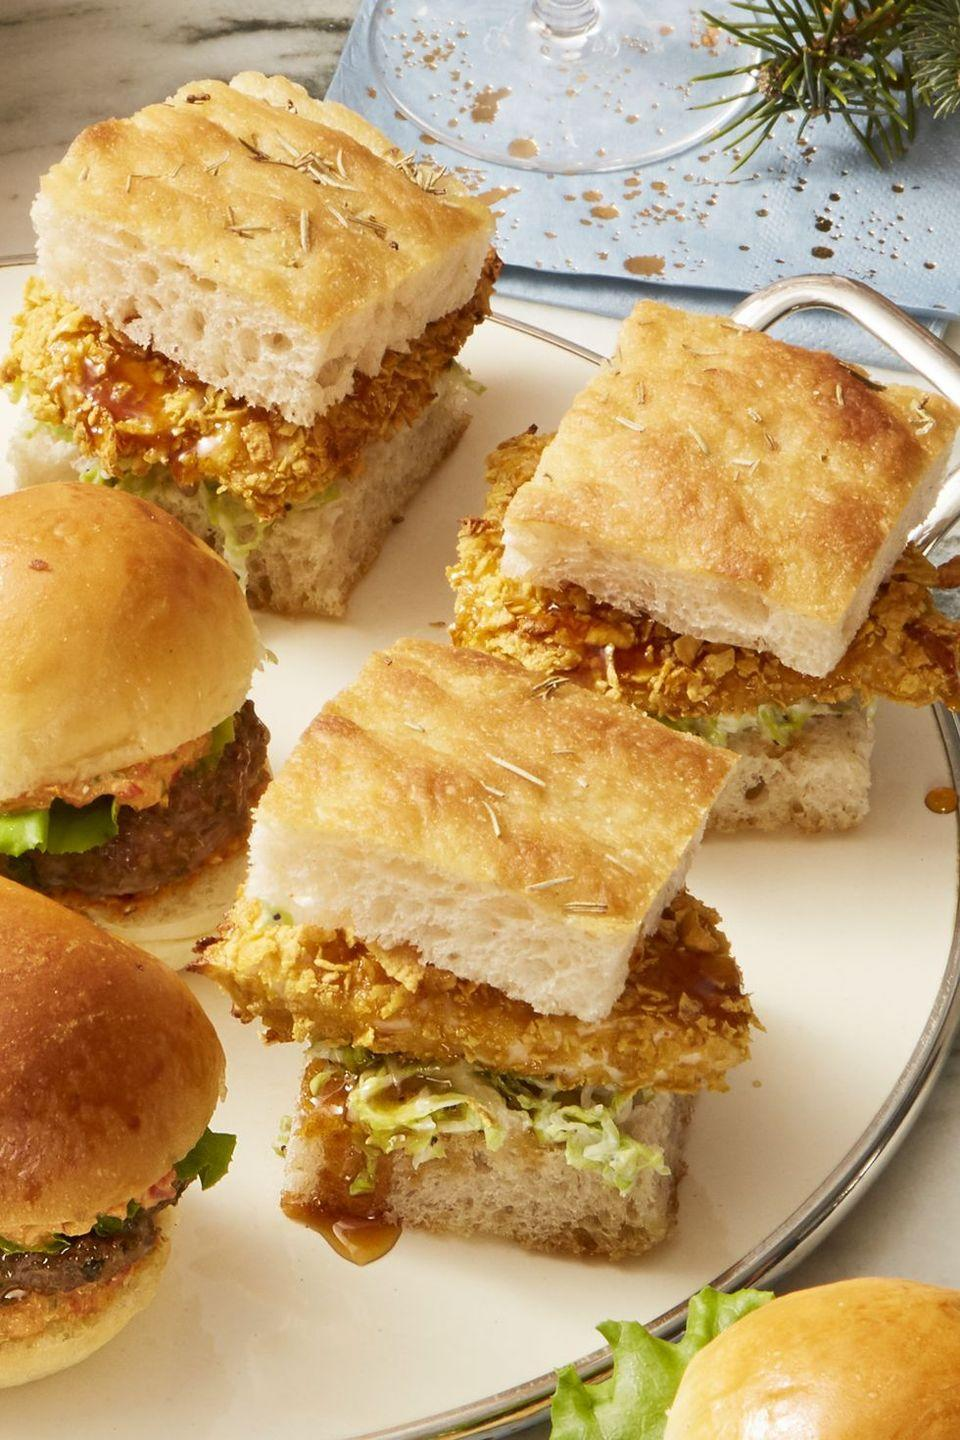 """<p>You're definitely going to want to make this one again and again — especially with that mouthwatering hot honey that gives these sliders an extra kick. </p><p><em><a href=""""https://www.goodhousekeeping.com/food-recipes/party-ideas/a25310452/crispy-hot-honey-chicken-sliders-recipe/"""" rel=""""nofollow noopener"""" target=""""_blank"""" data-ylk=""""slk:Get the recipe for Crispy Hot-Honey Chicken Sliders »"""" class=""""link rapid-noclick-resp"""">Get the recipe for Crispy Hot-Honey Chicken Sliders »</a></em></p>"""